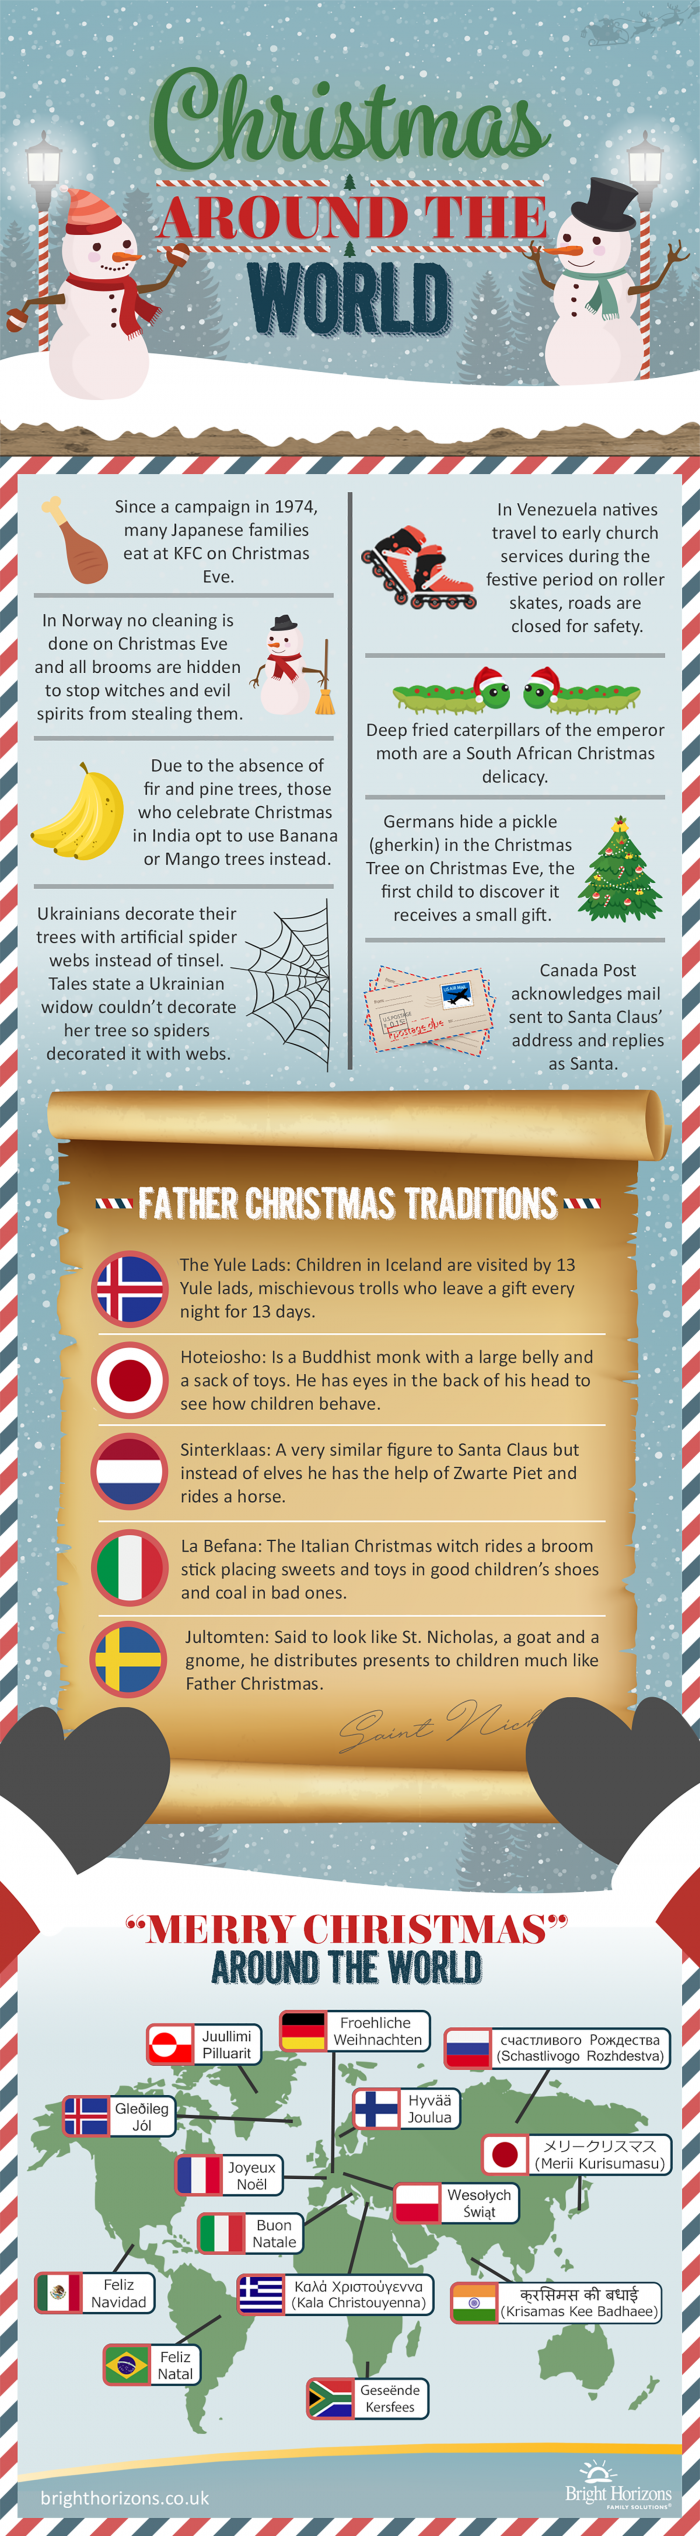 Christmas Traditions Around the World #infographic